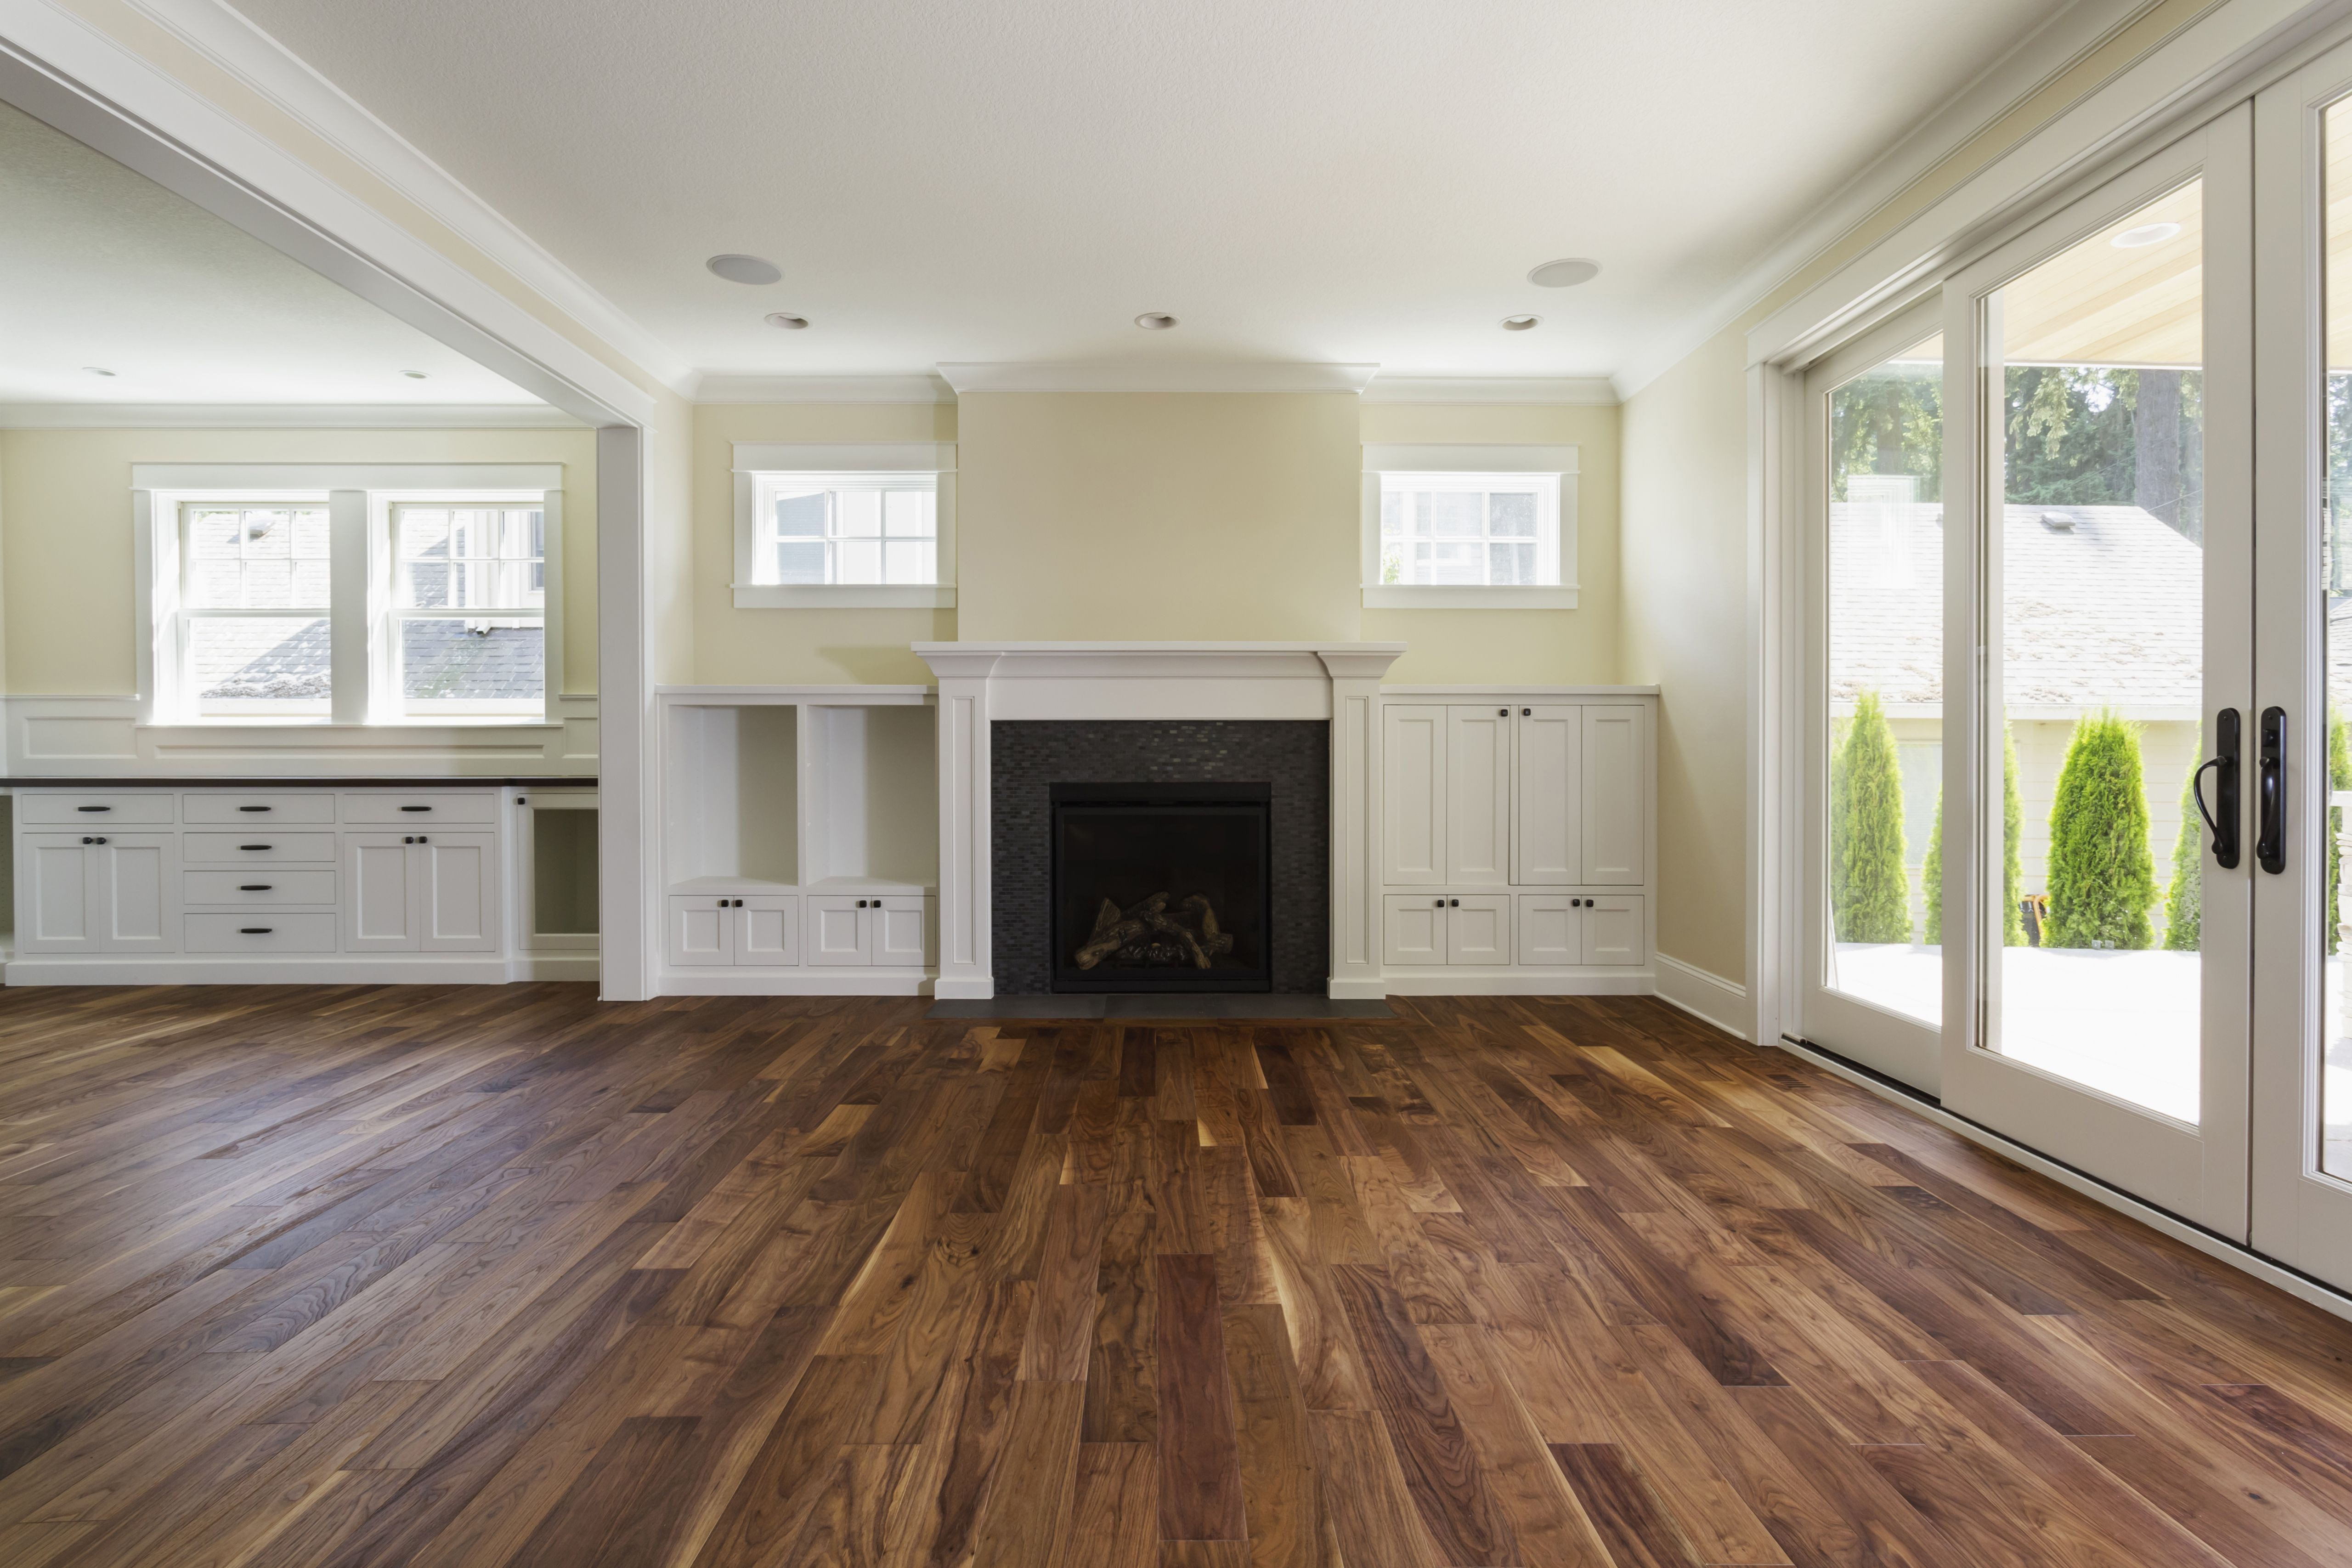 hardwood floor finishing products of the pros and cons of prefinished hardwood flooring for fireplace and built in shelves in living room 482143011 57bef8e33df78cc16e035397